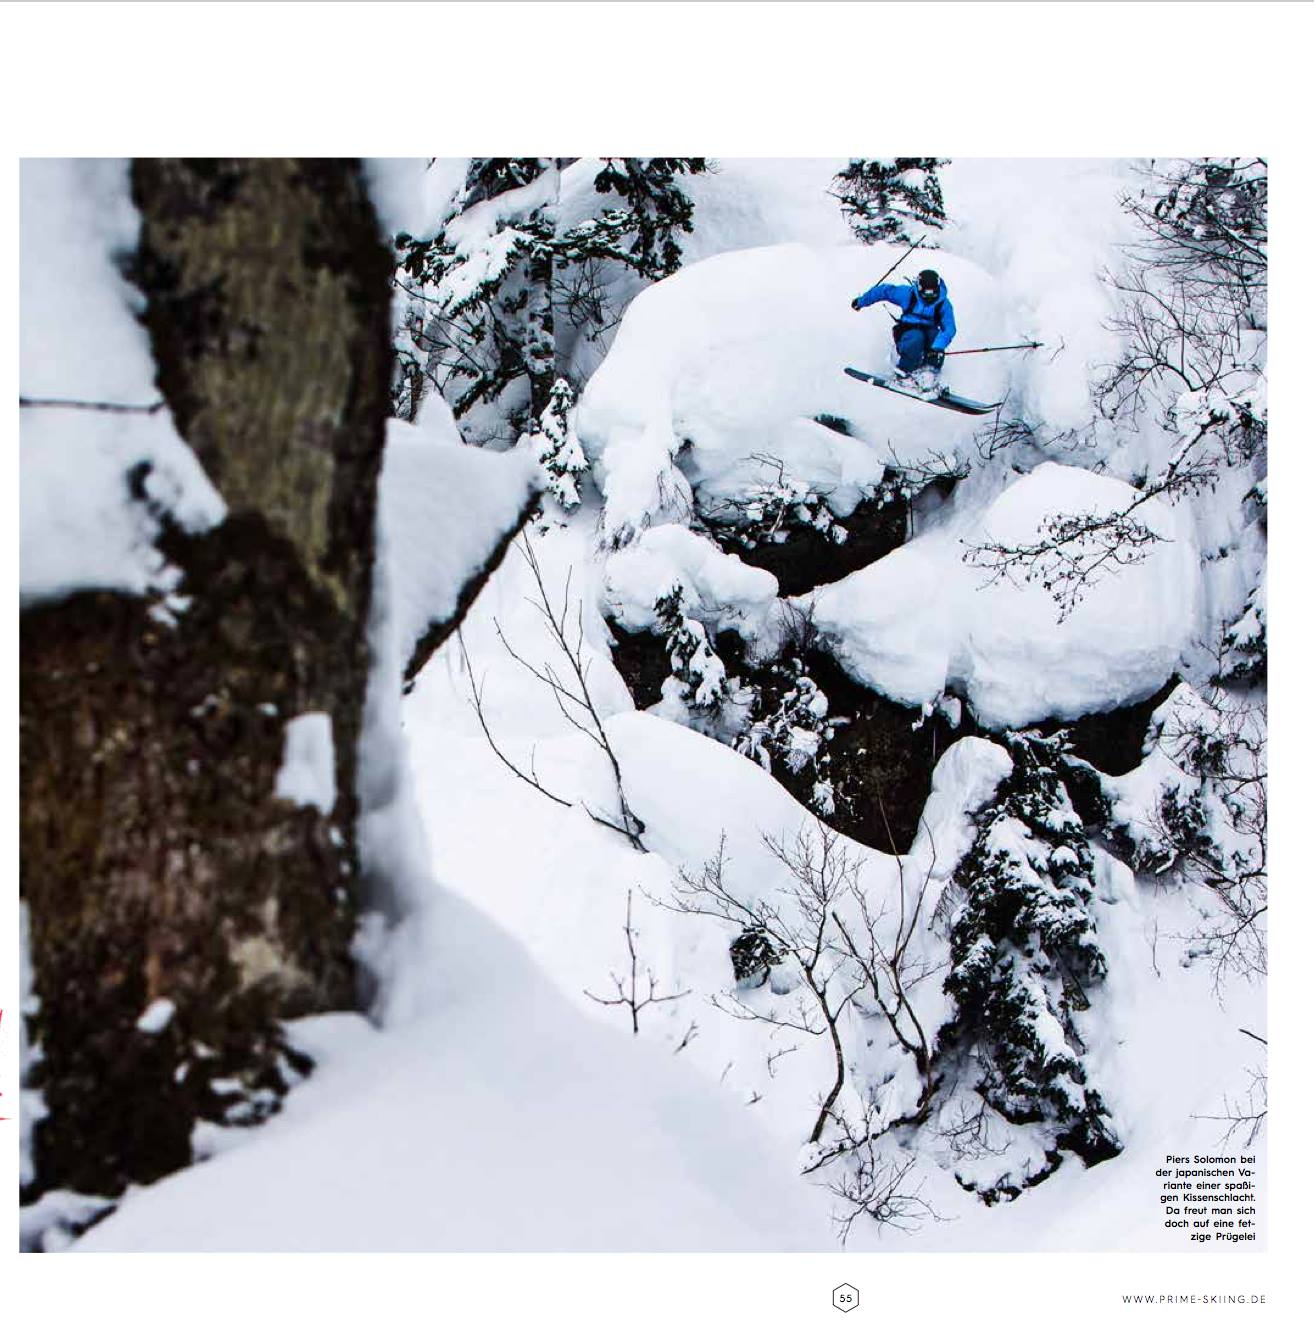 """Prime Skiing"" Magazine (GER)"